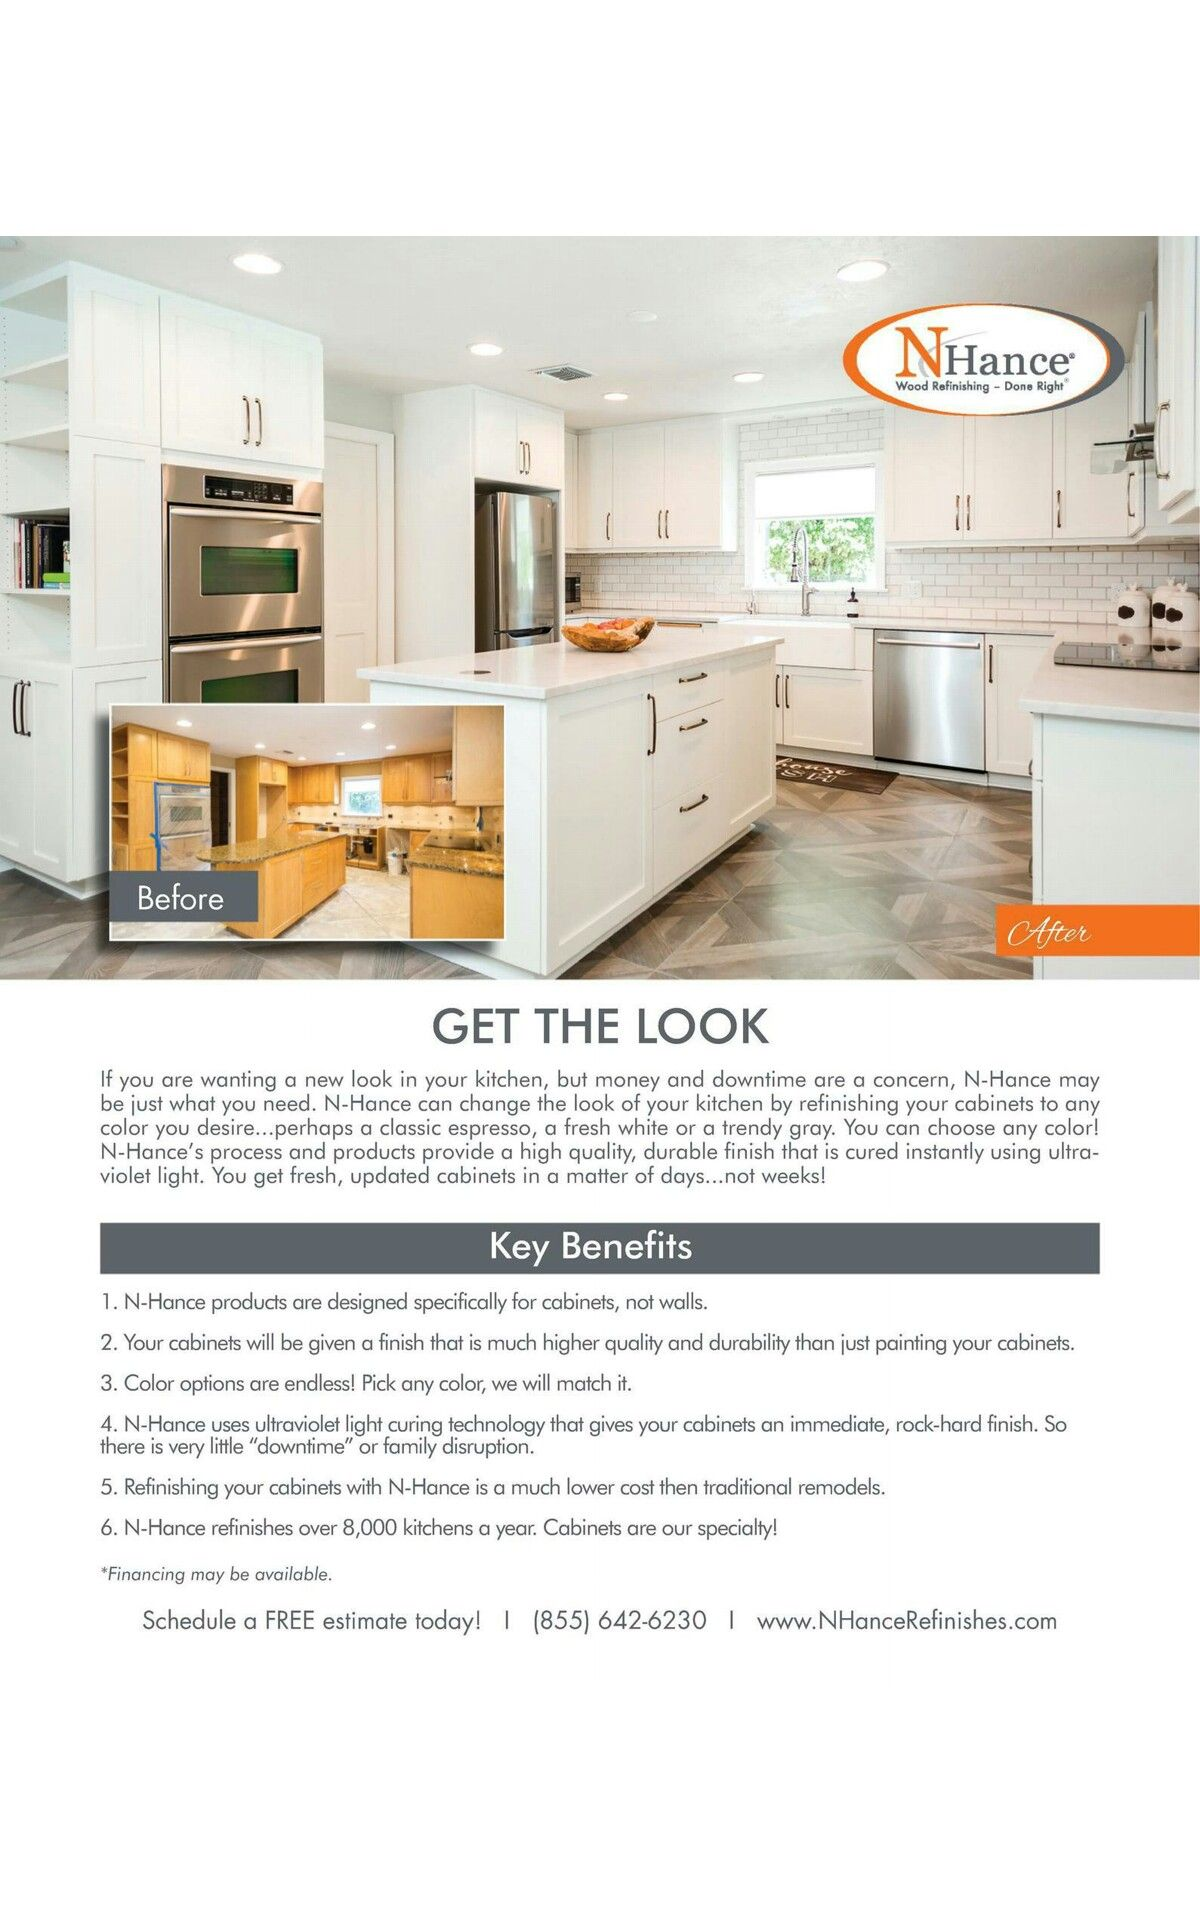 Pin By Jane Scott On Living Spaces With Images Kitchen Refinishing Martha Stewart Living Refinishing Cabinets